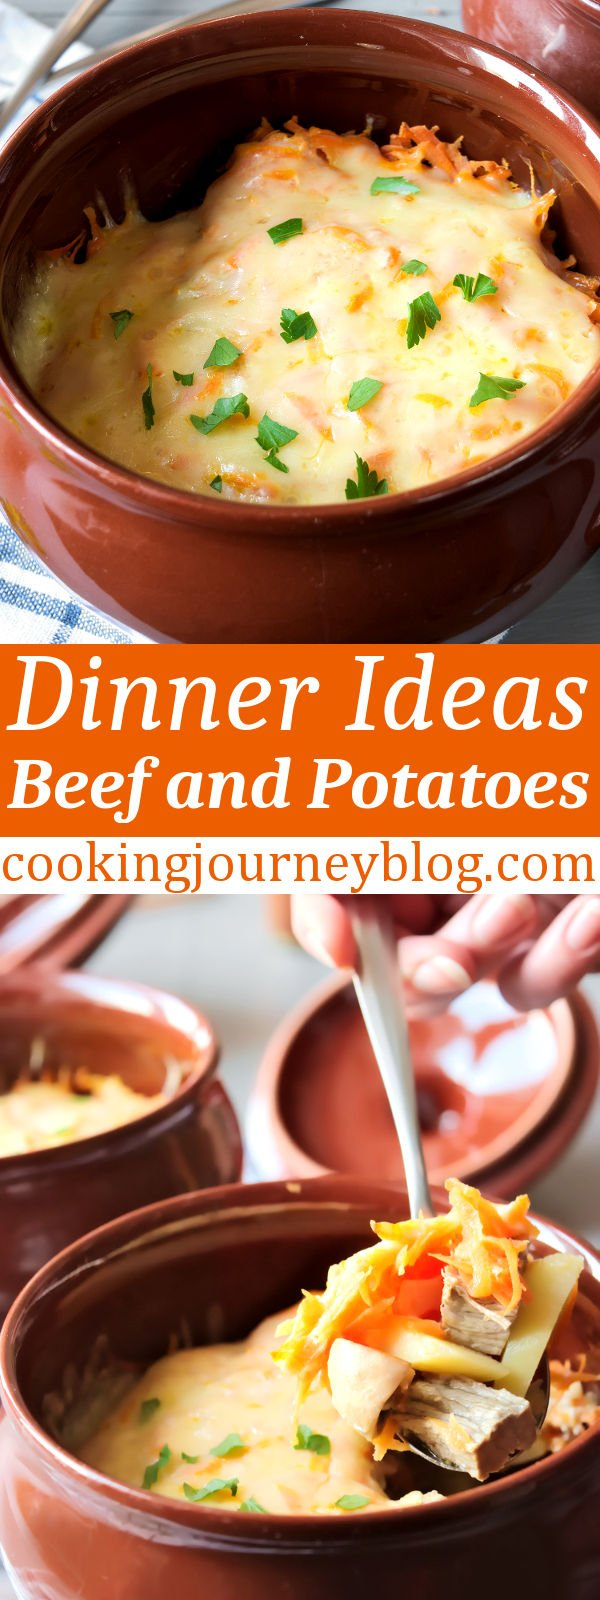 Yes to beef and potatoes for dinner! Simple, filling and delicious meal, baked in clay pot. You will have easy dinners with this idea. #cookingjourney #beef #dinner